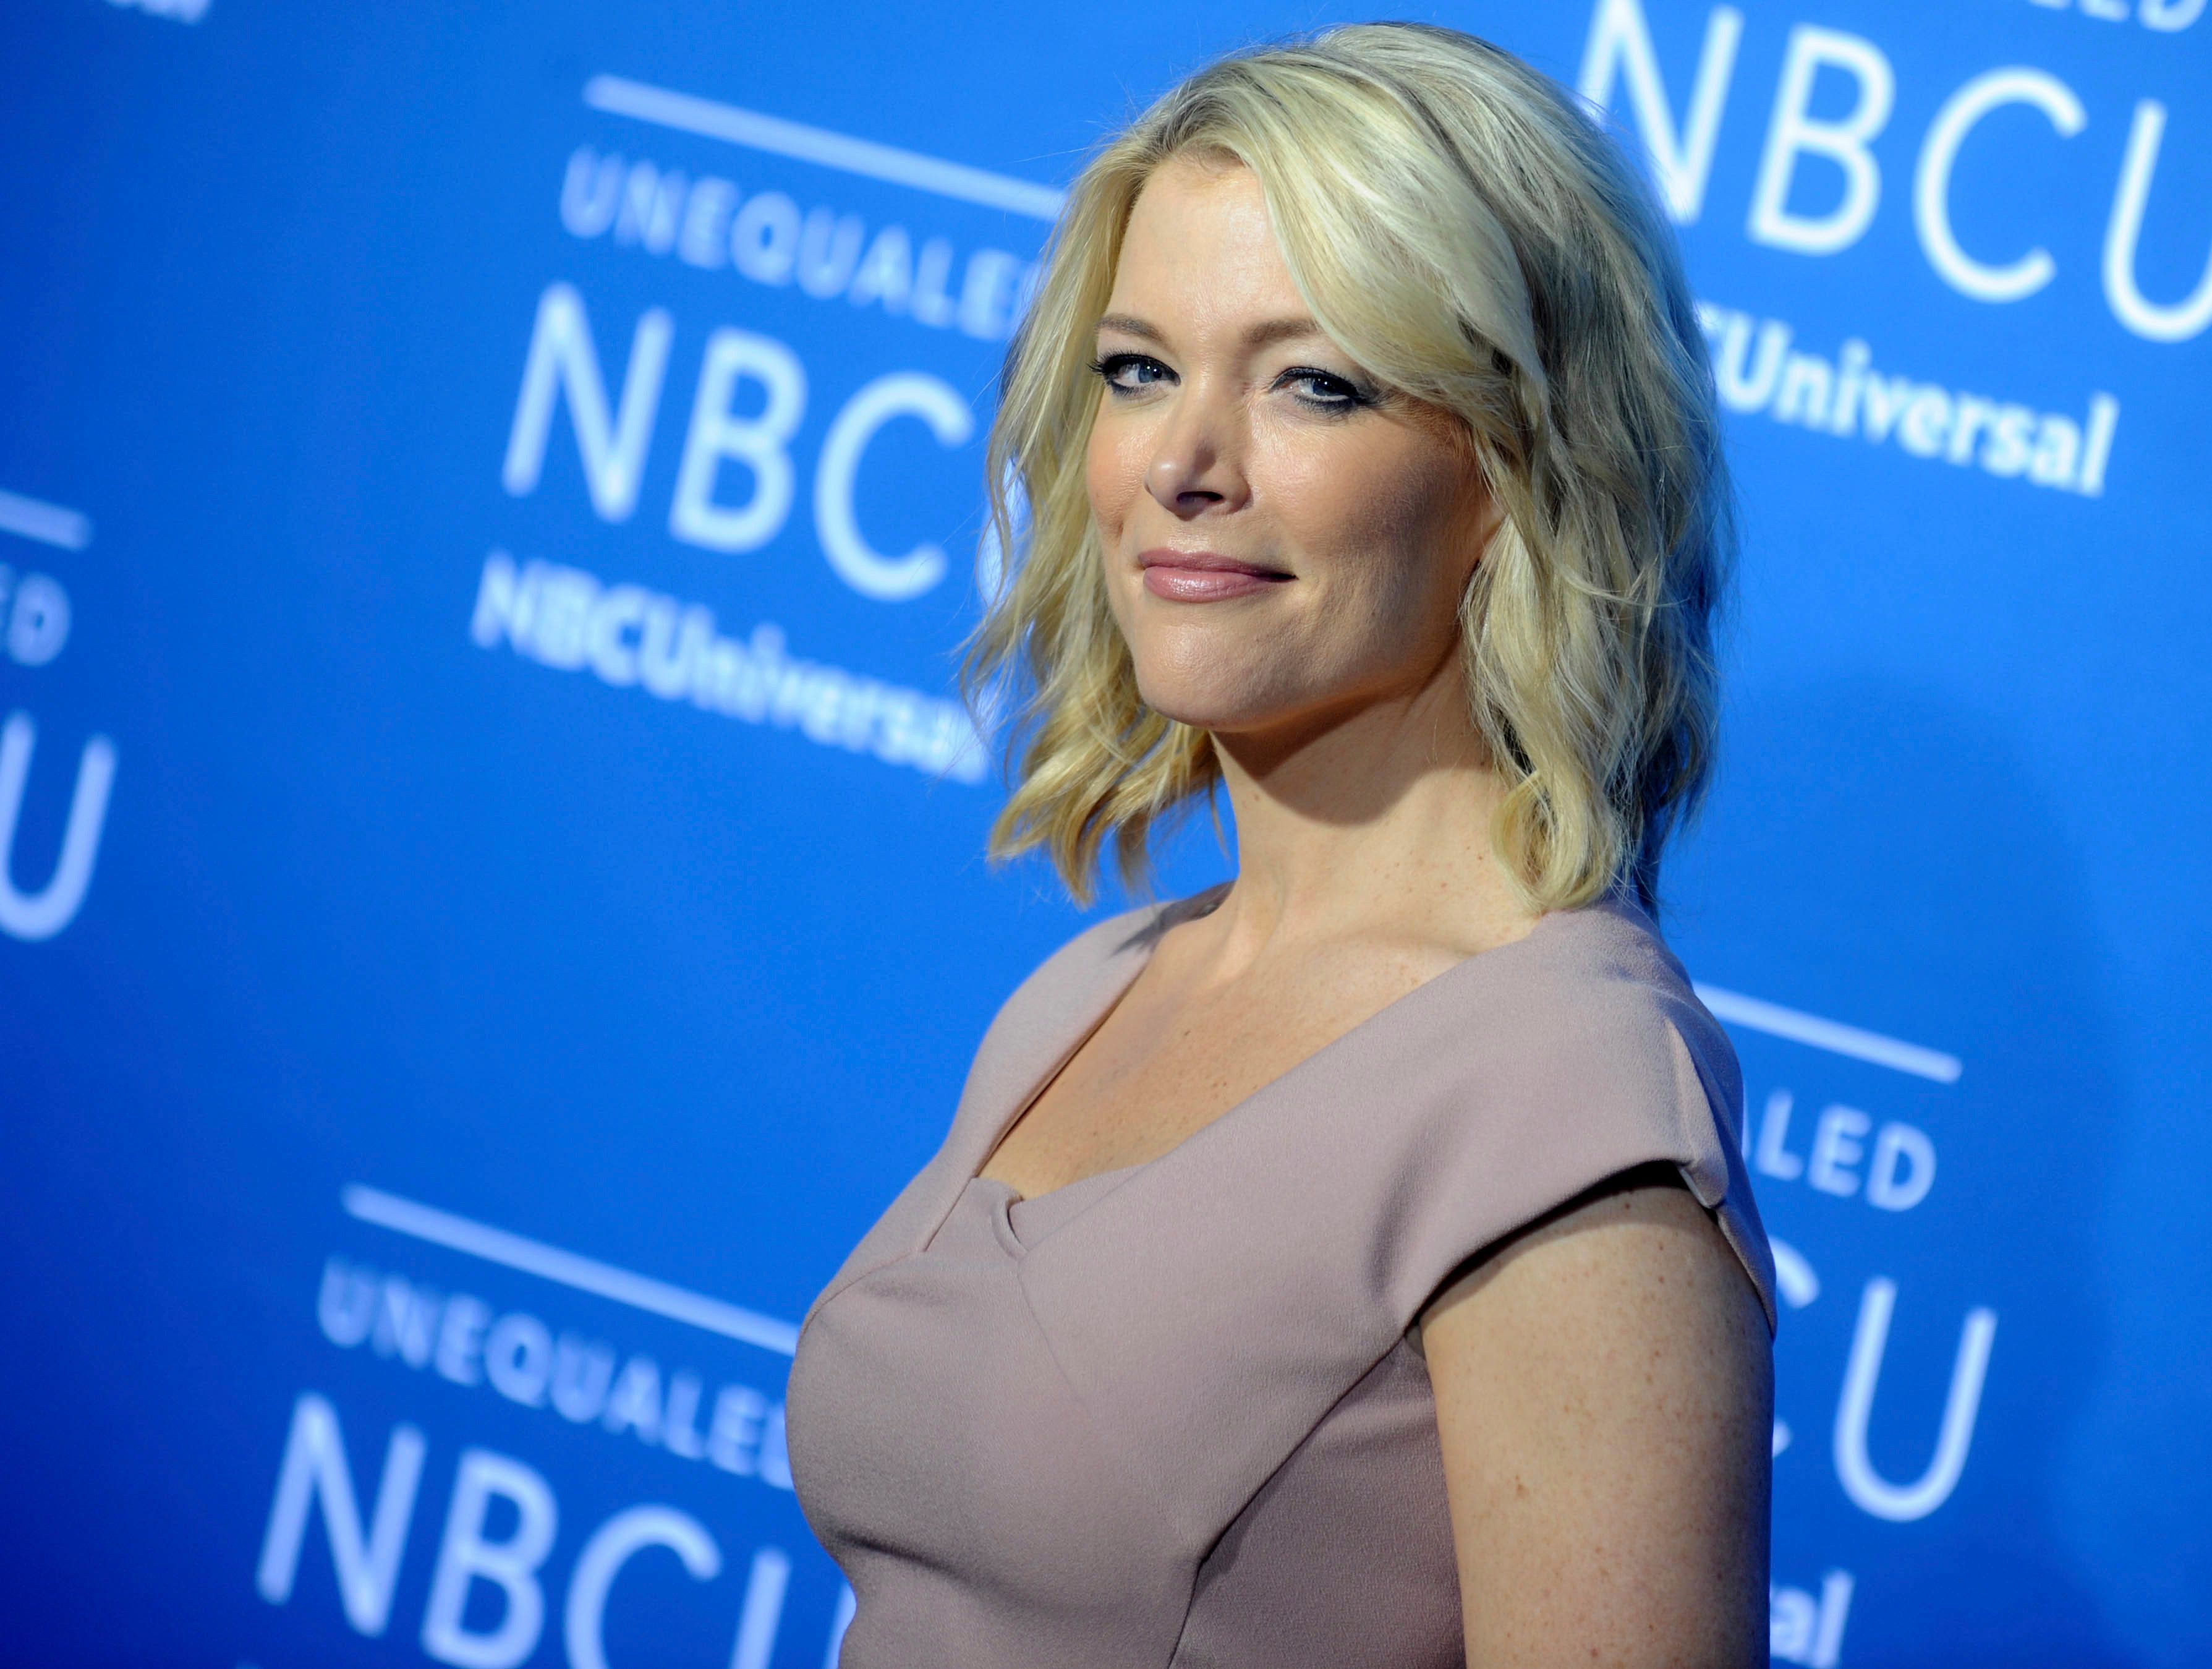 Photo by: DVT/STAR MAX/IPx 2018 5/15/17 Megyn Kelly at The 2017 NBCUniversal Upfront in New York City.